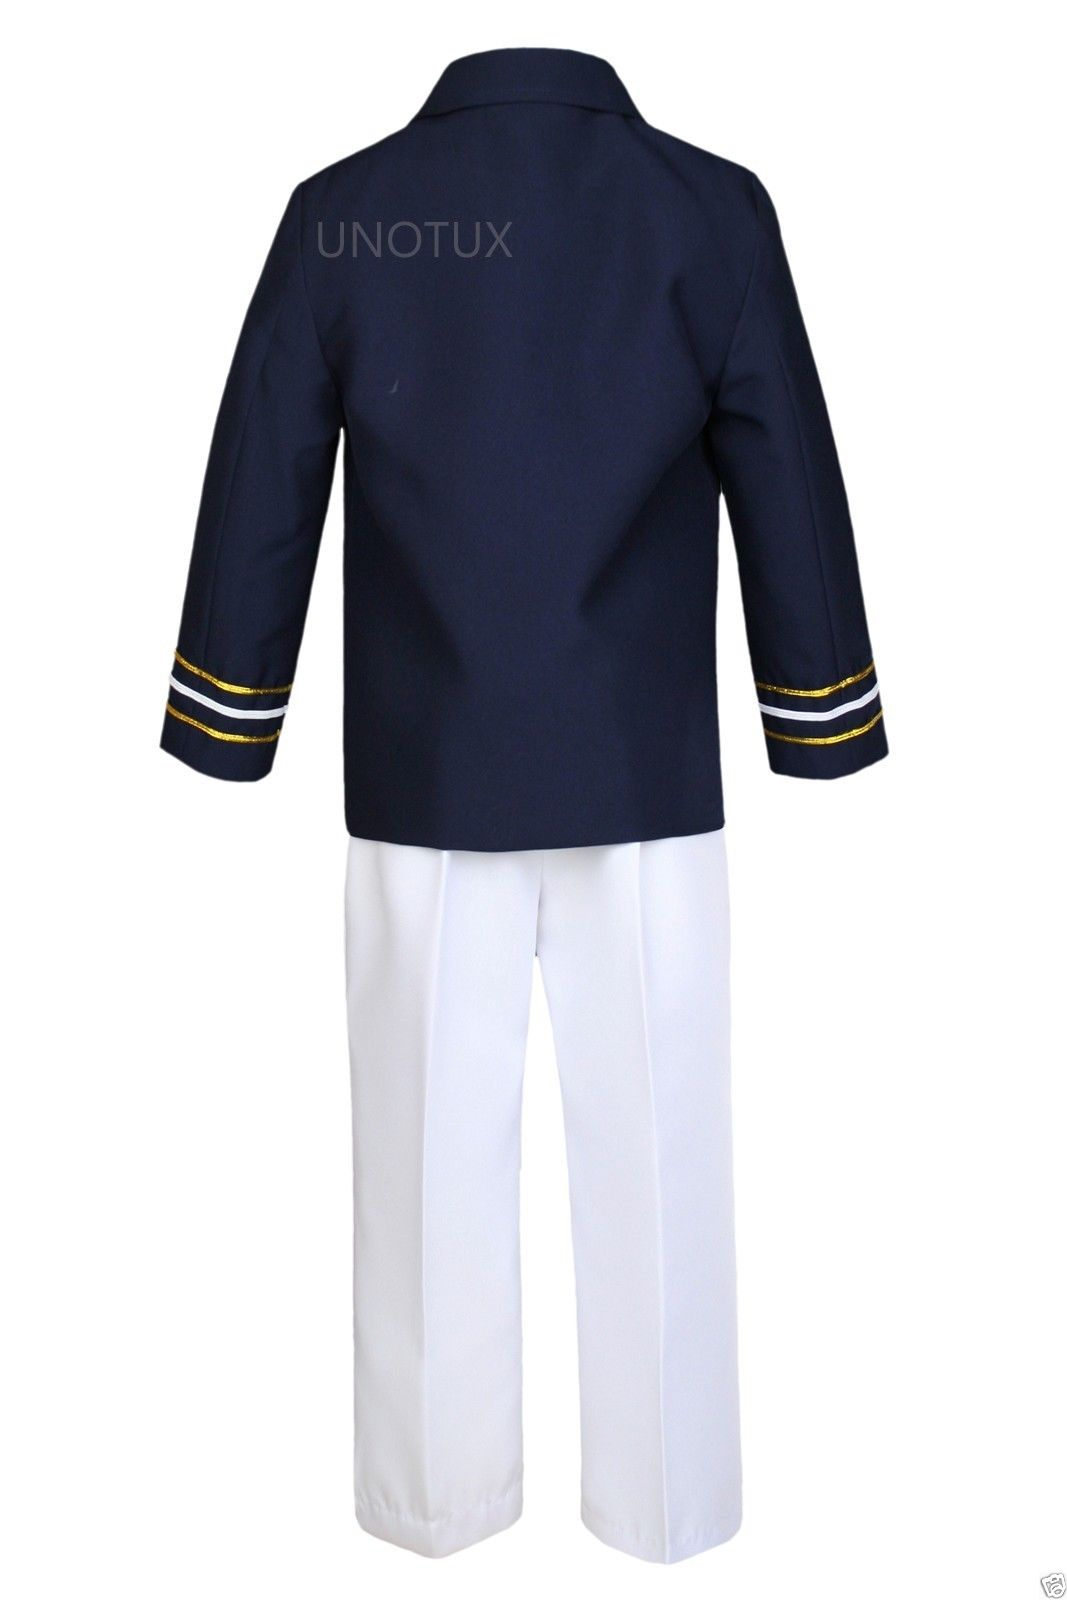 93ae34724 Infant Toddler Boy Party Formal Captain Nautica Sailor Suit Hat Outfits  Navy 1-7